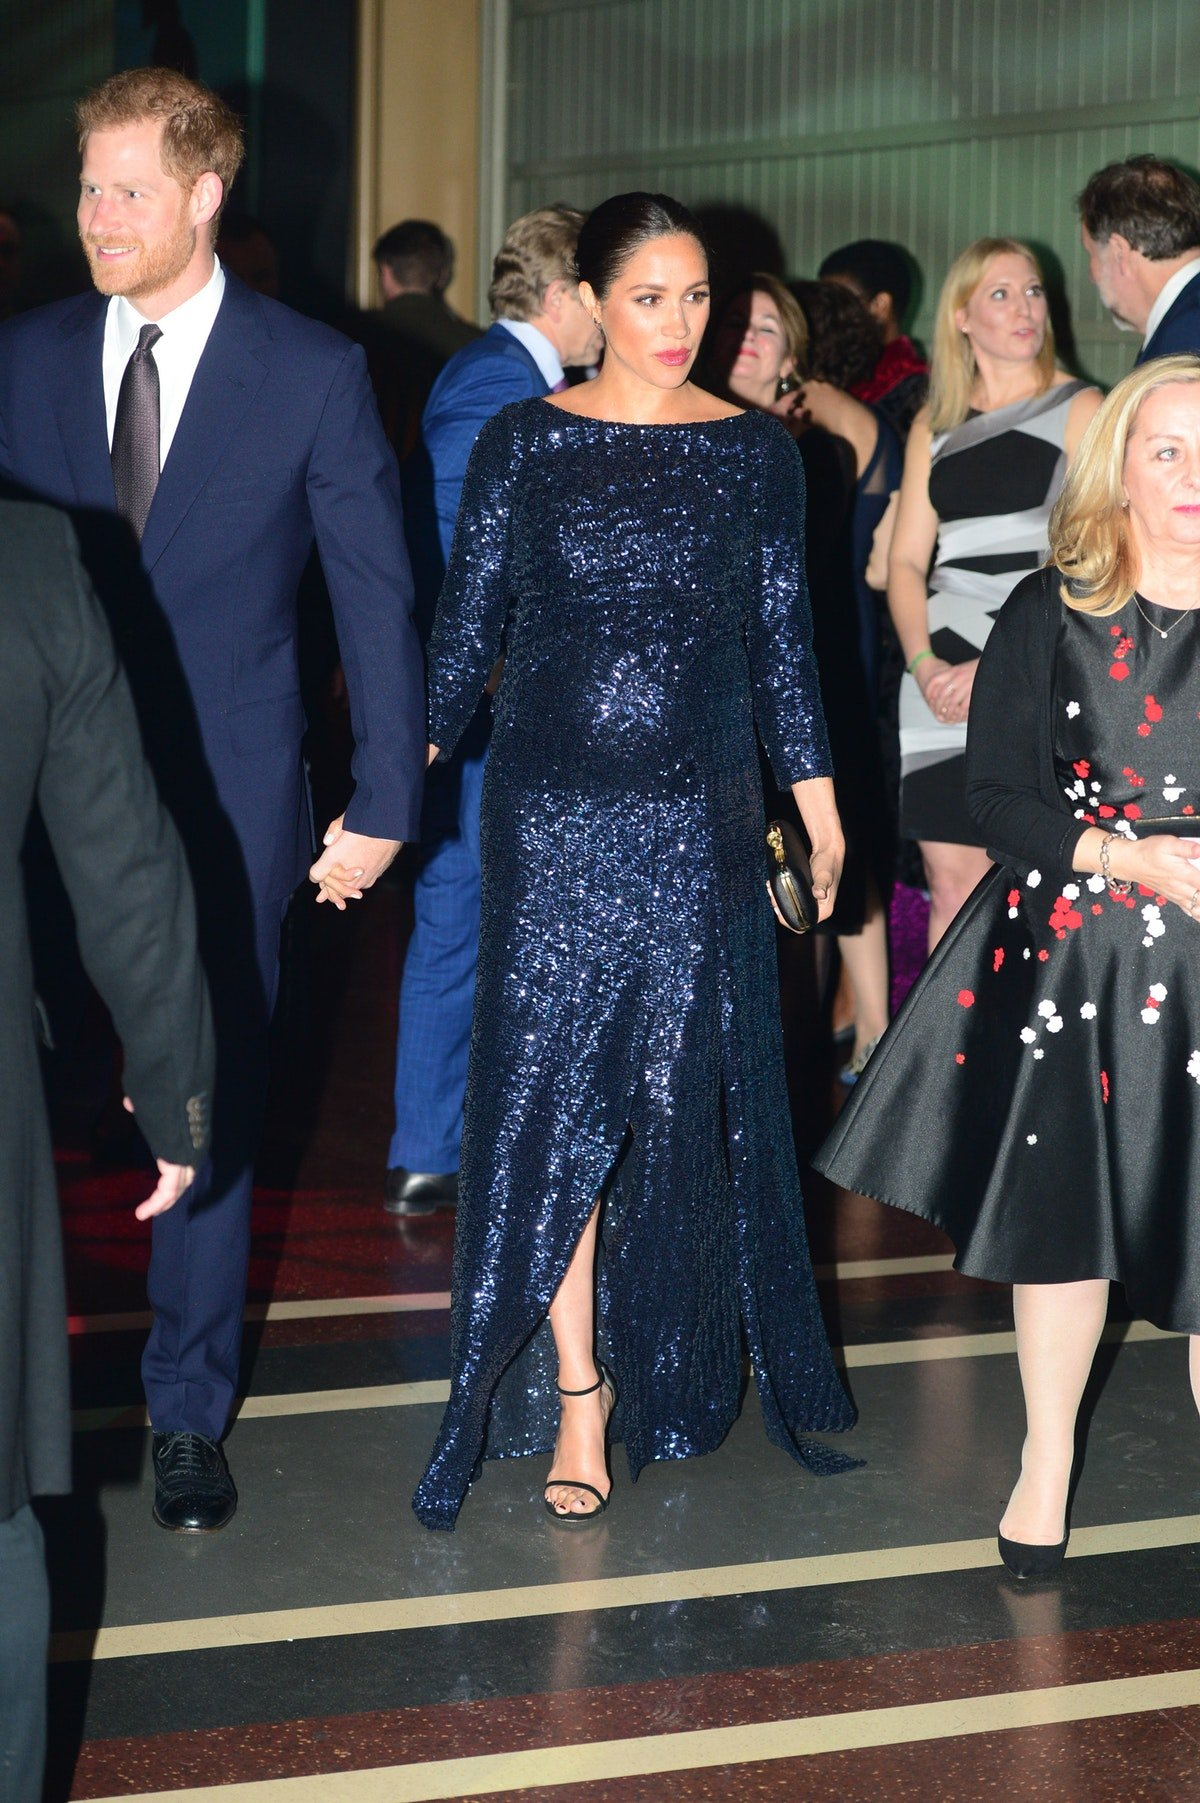 Meghan Markle Just Wore Head-To-Toe Sequins & She's TOTALLY A Queen